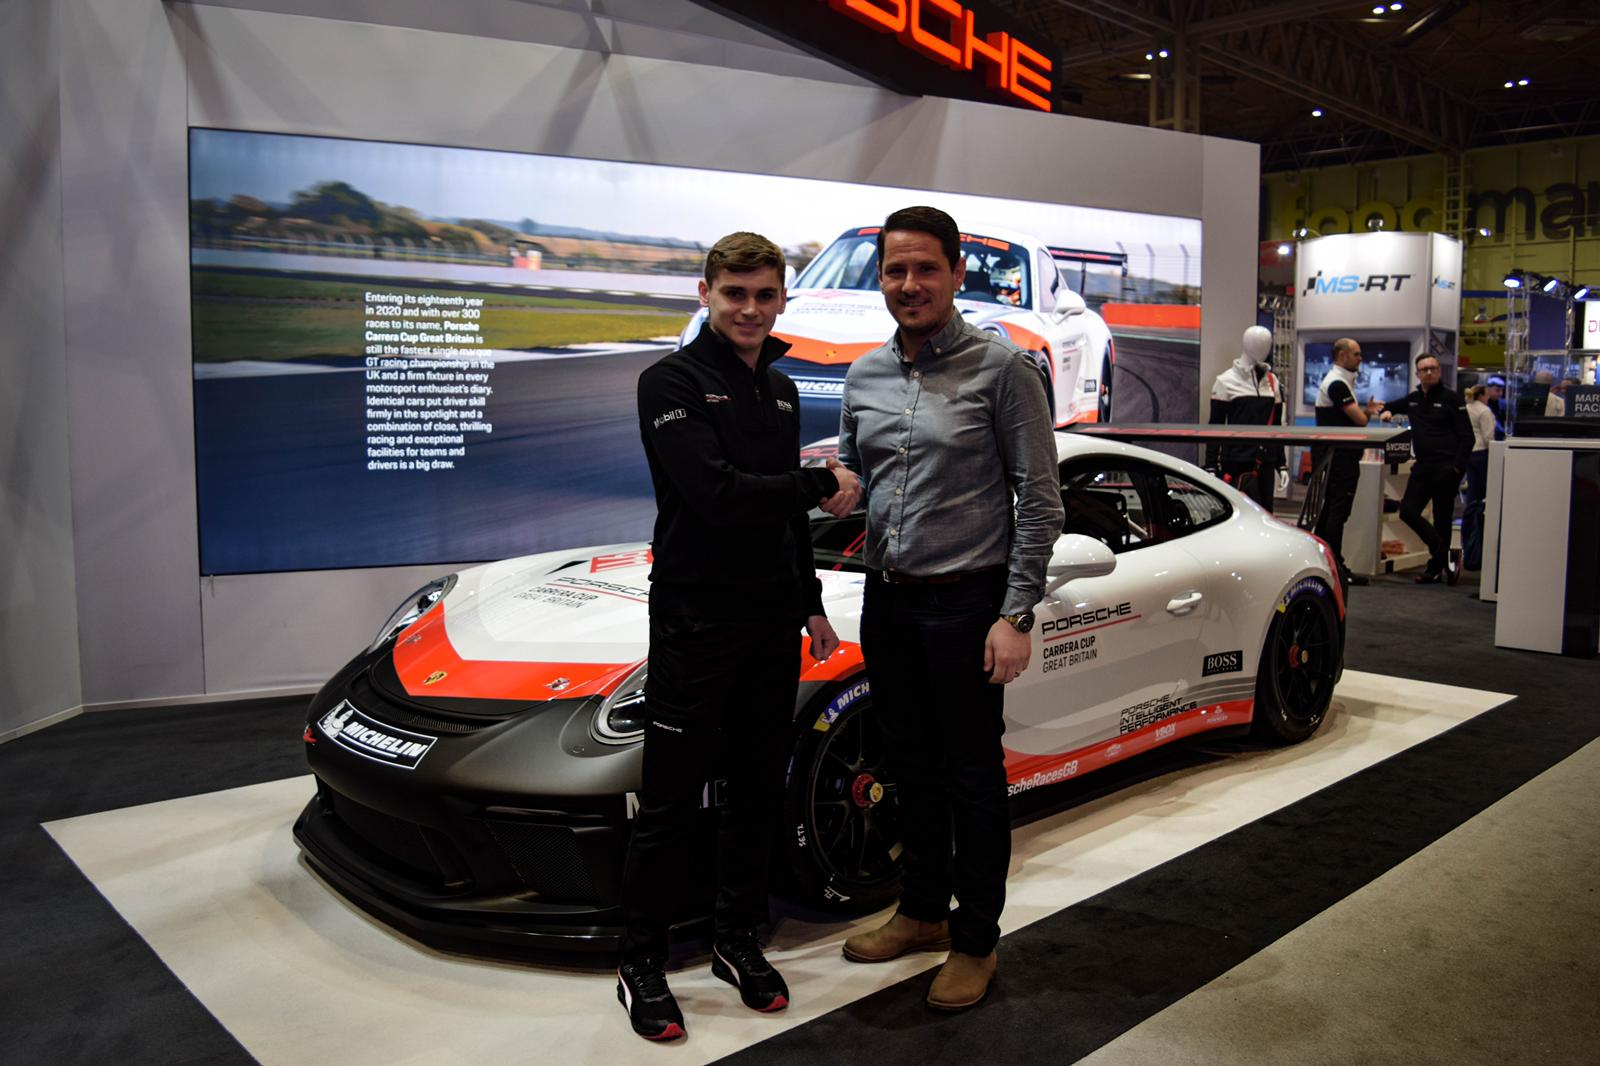 Octane Finance to back Porsche Junior driver Harry King for Carrera Cup GB debut